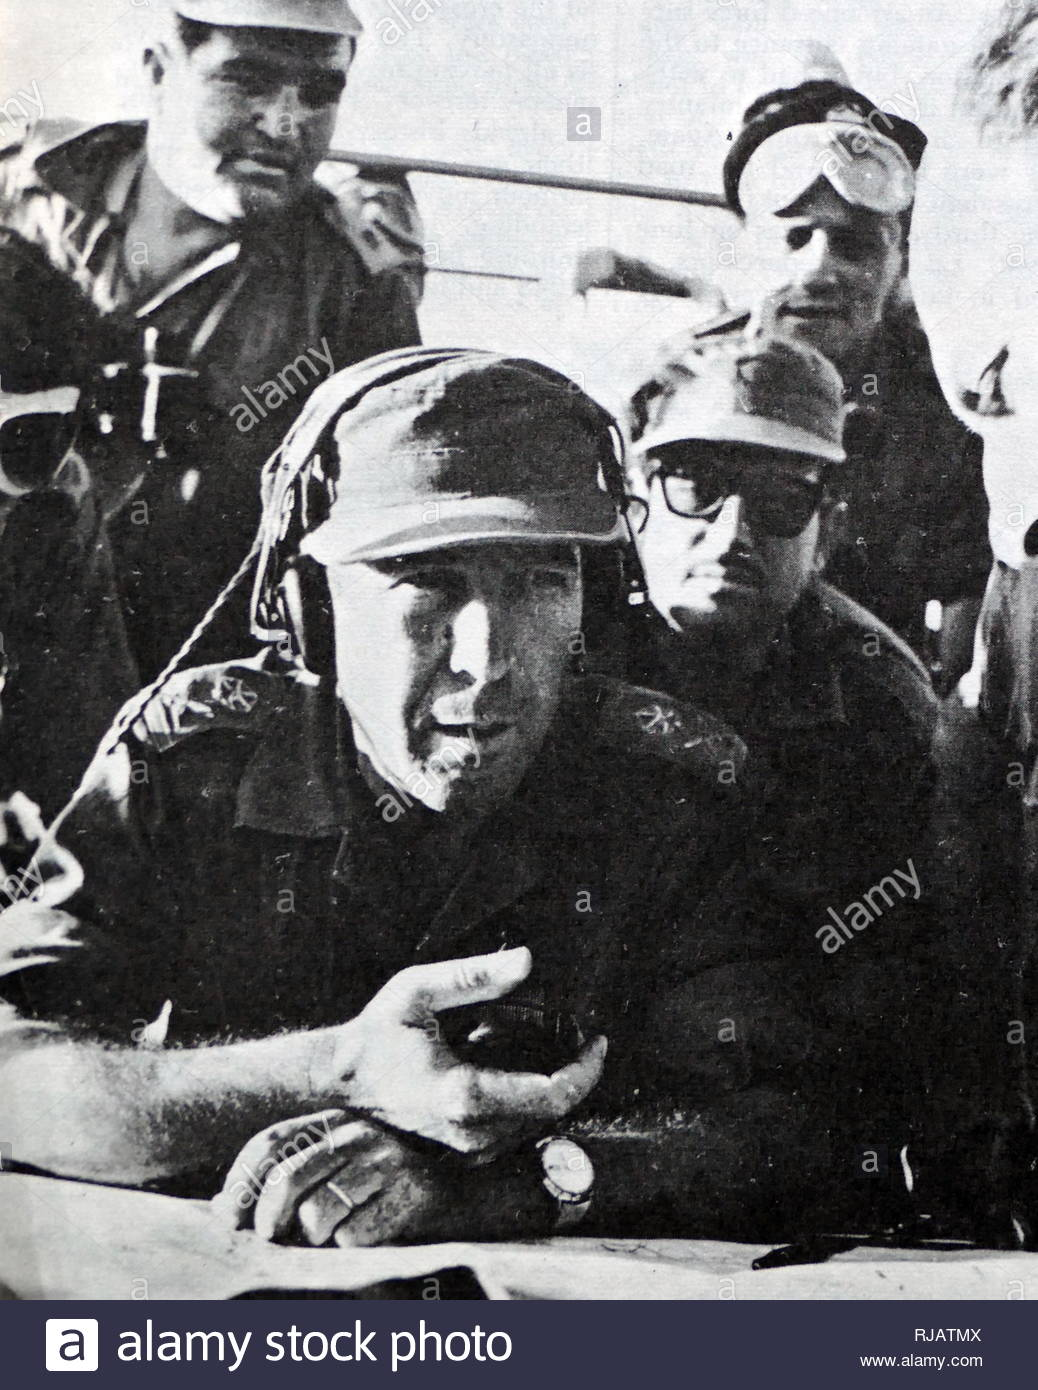 Israel Tal (1924 - 2010), Israel Defense Forces (IDF) general known for his skills in tank warfare. armoured-division commander in Sinai Peninsula during the Six-Day War, and commander of the southern front during the final stages of the Yom Kippur War. Tal was the creator of the Israeli armoured doctrine that led to the Israeli successes in the Sinai surprise attack of the Six-Day War. In 1964, General Tal took over the Israeli armoured corps and organized it into the leading element of the Israeli Defense Forces, characterized by high mobility and relentless assault - Stock Image